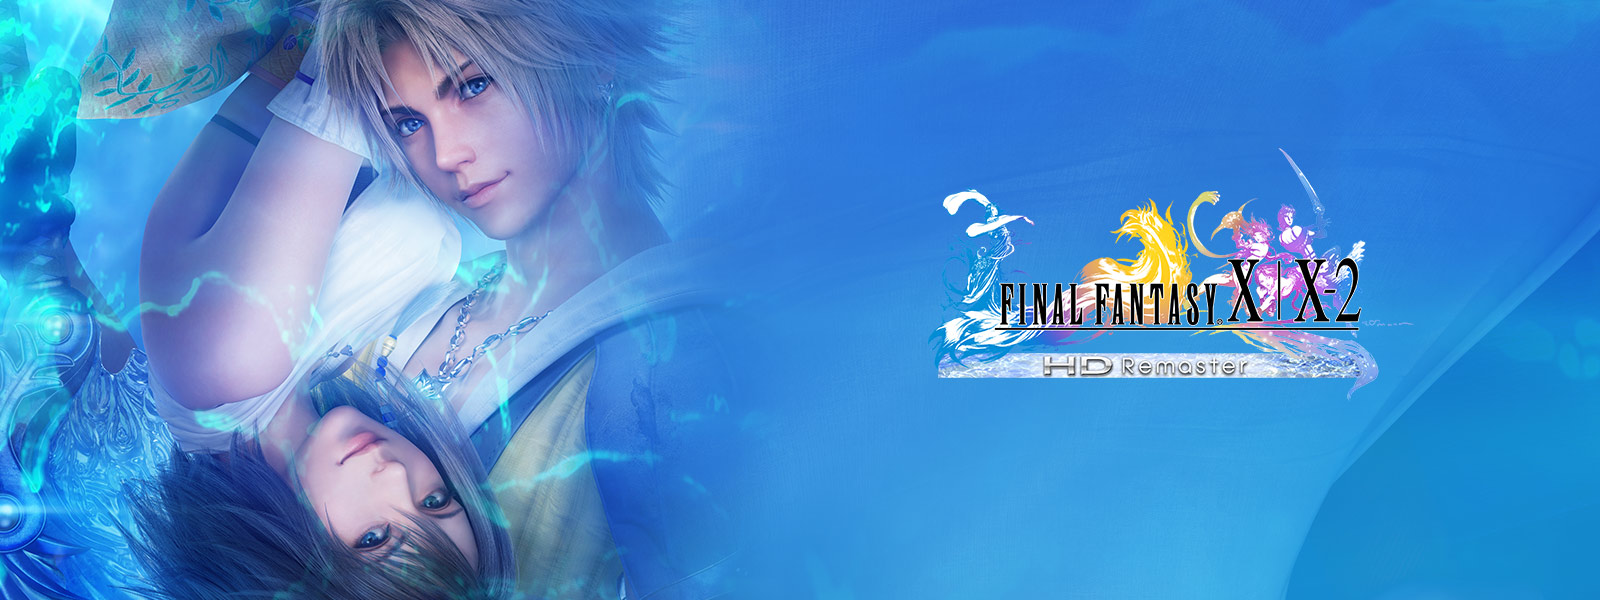 FINAL FANTASY X character Tidus above an upside-down image of Yuna